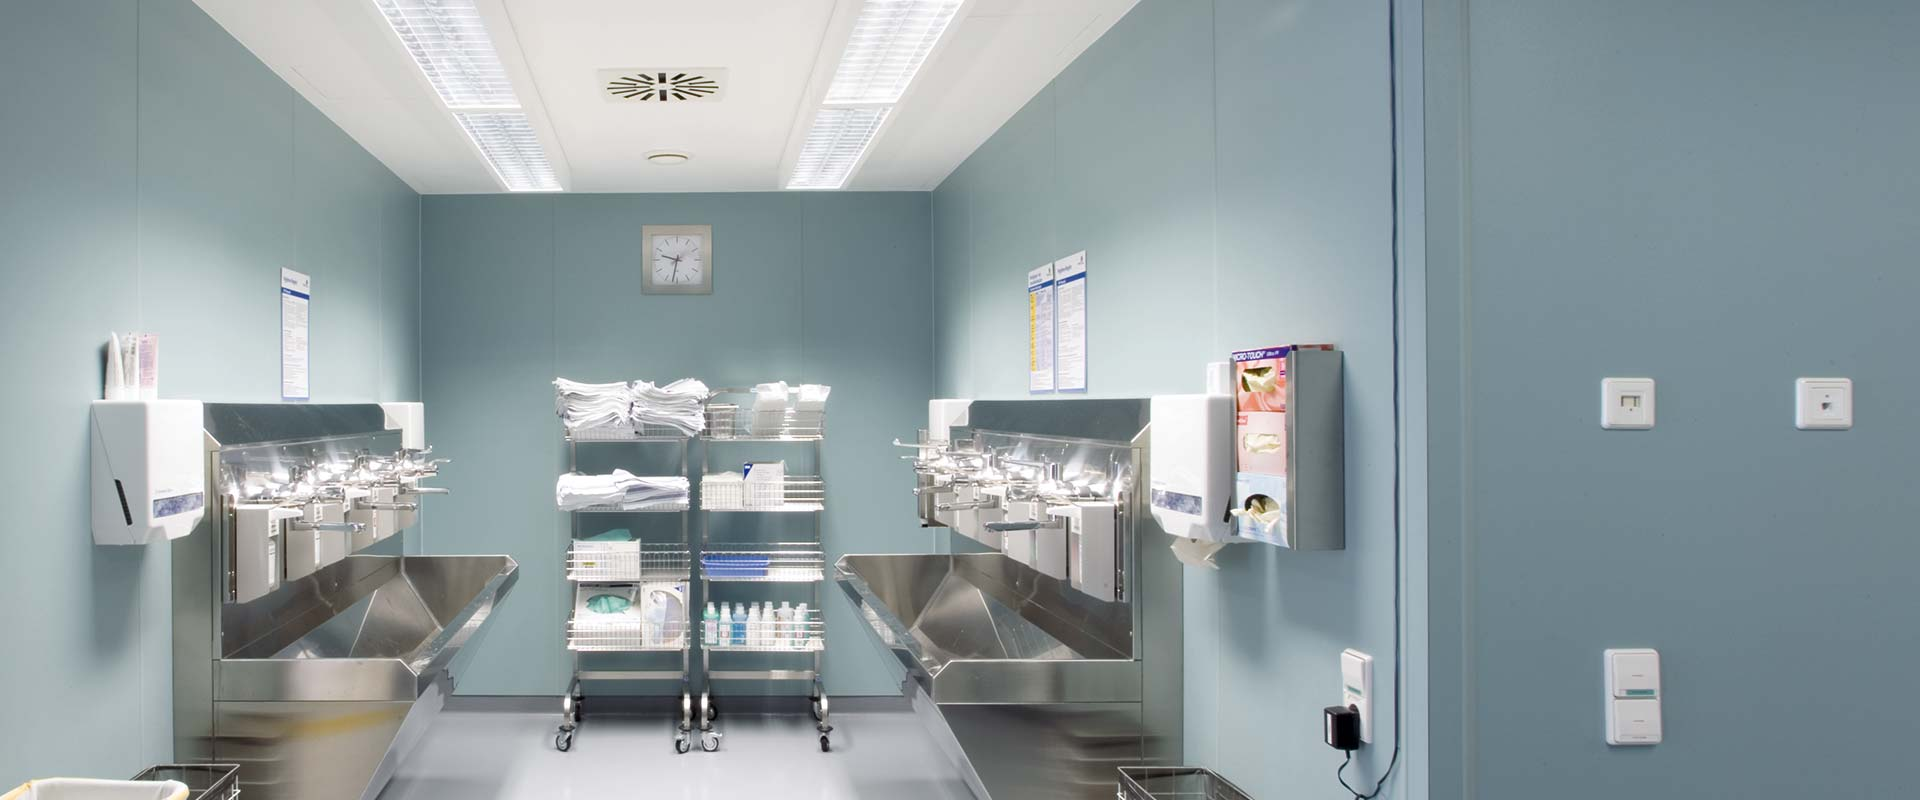 Utility Room Lighting Led Light For Care Homes By Trilux